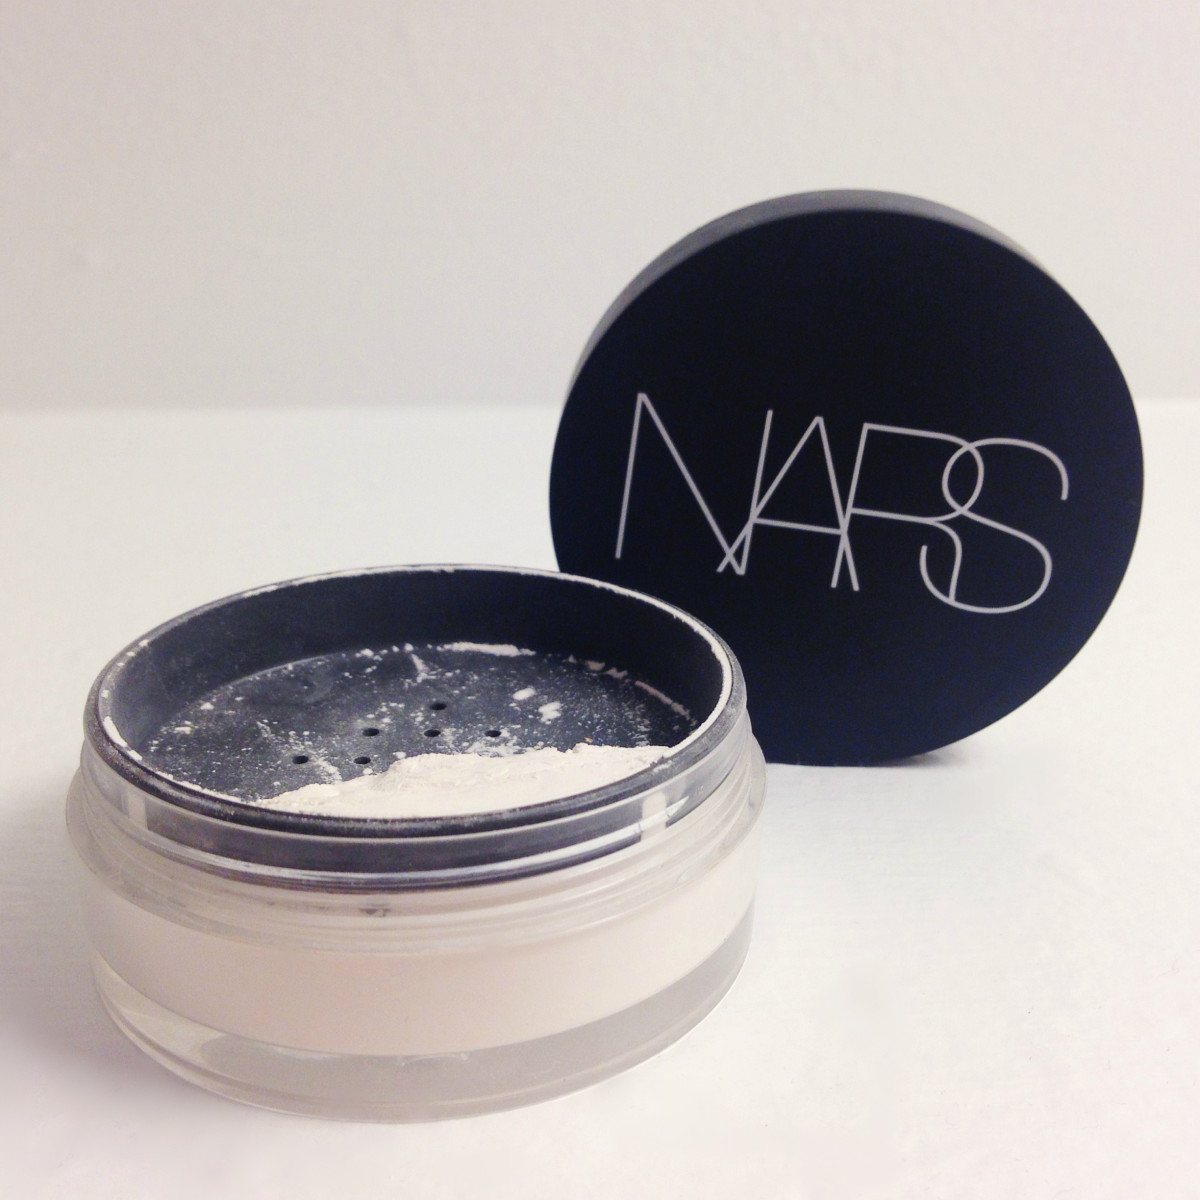 NARS Light Reflecting Loose Setting Powder is #1.